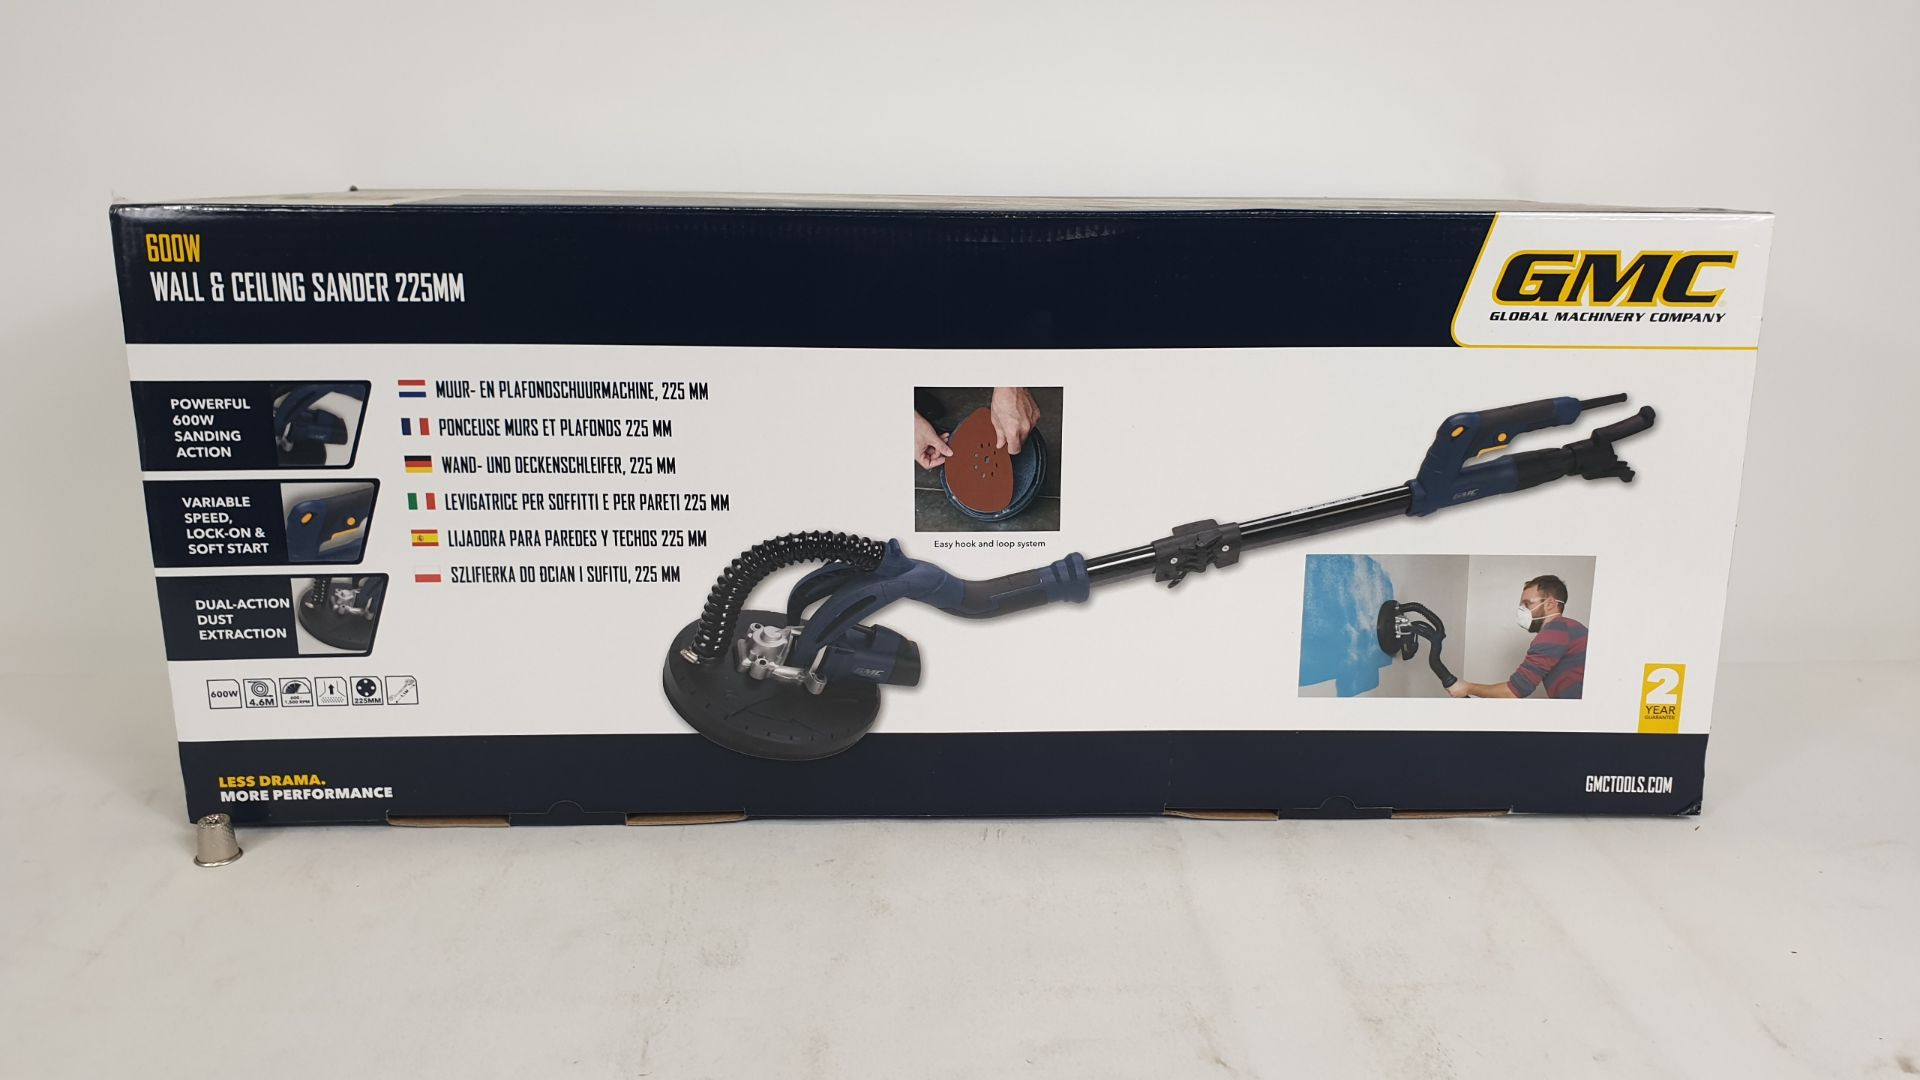 Lot 1555 - (LOT FOR THURSDAY 28TH MAY AUCTION) GMC 600W WALL AND CEILING SANDER 225M (PRODUCT CODE 264803) - (